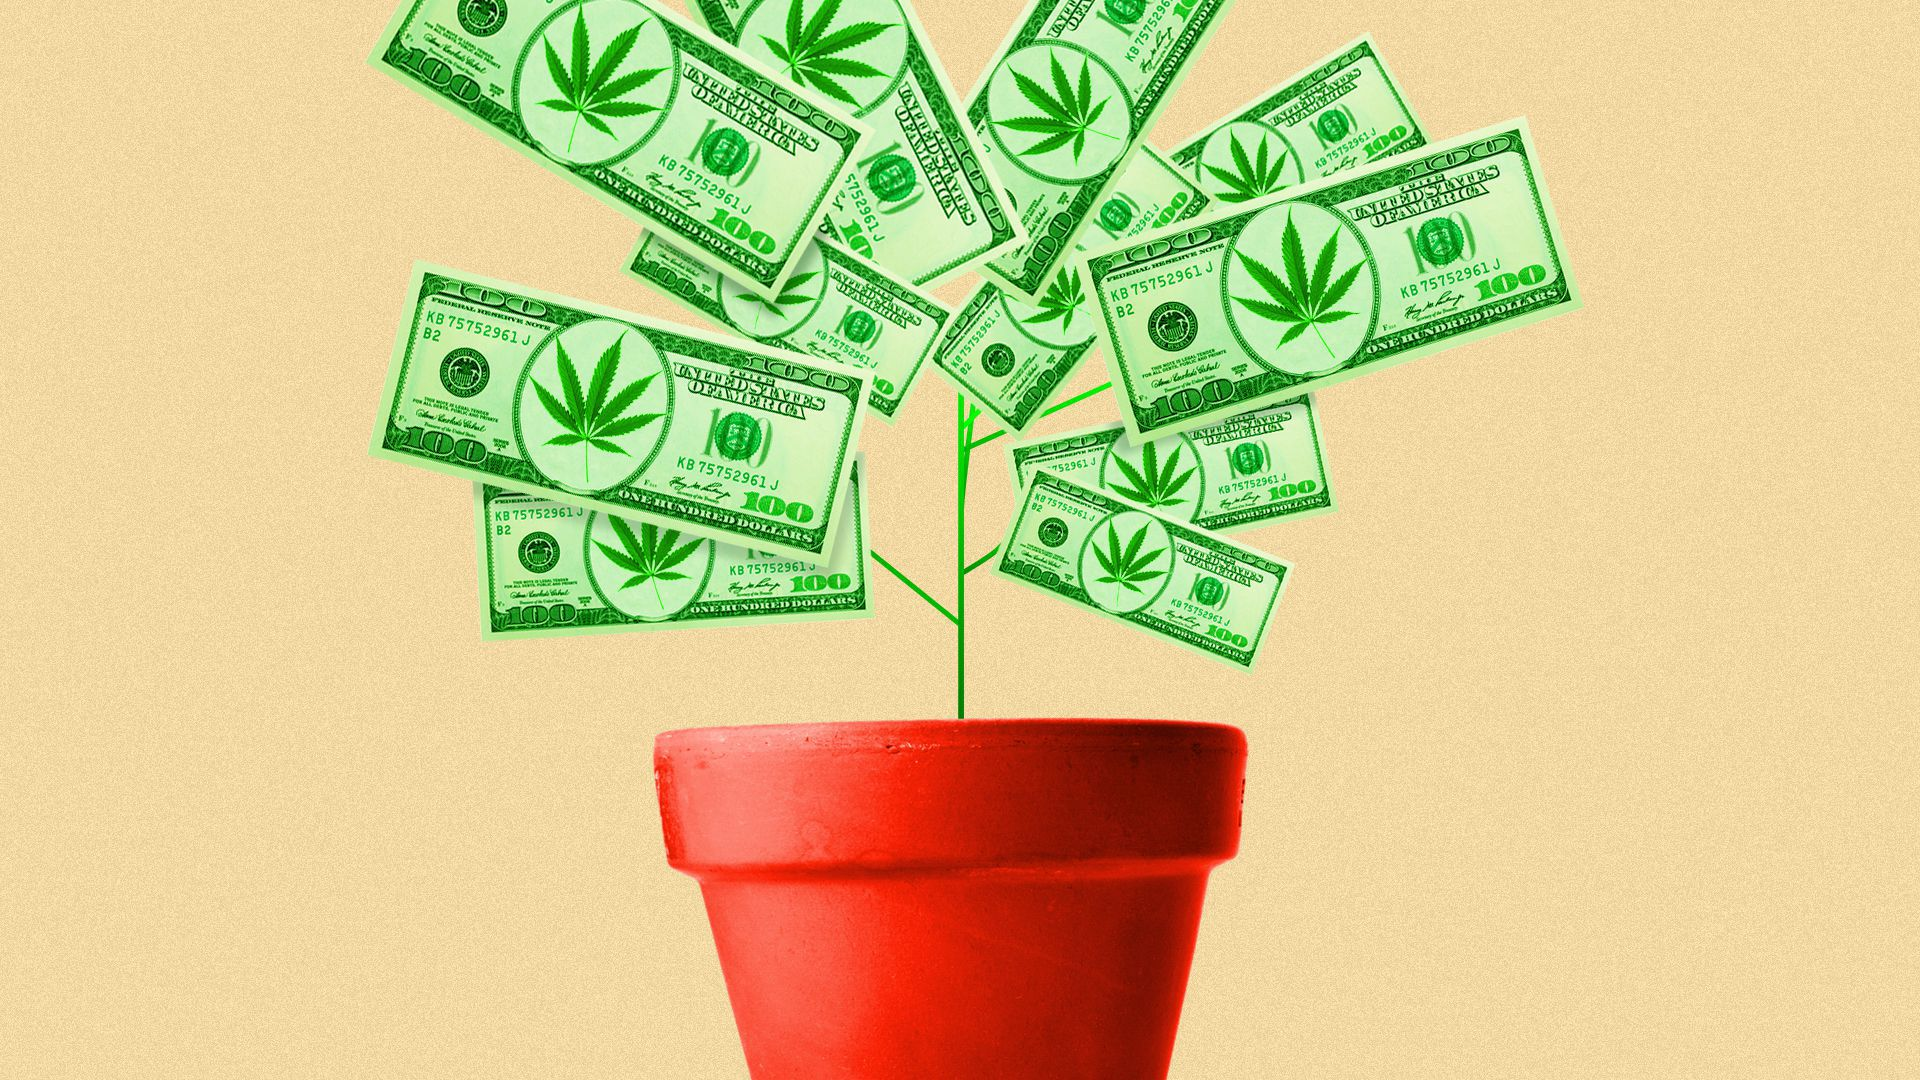 A flowerpot with a plant growing out of it that looks like marijuana, but is made of greenbacks.